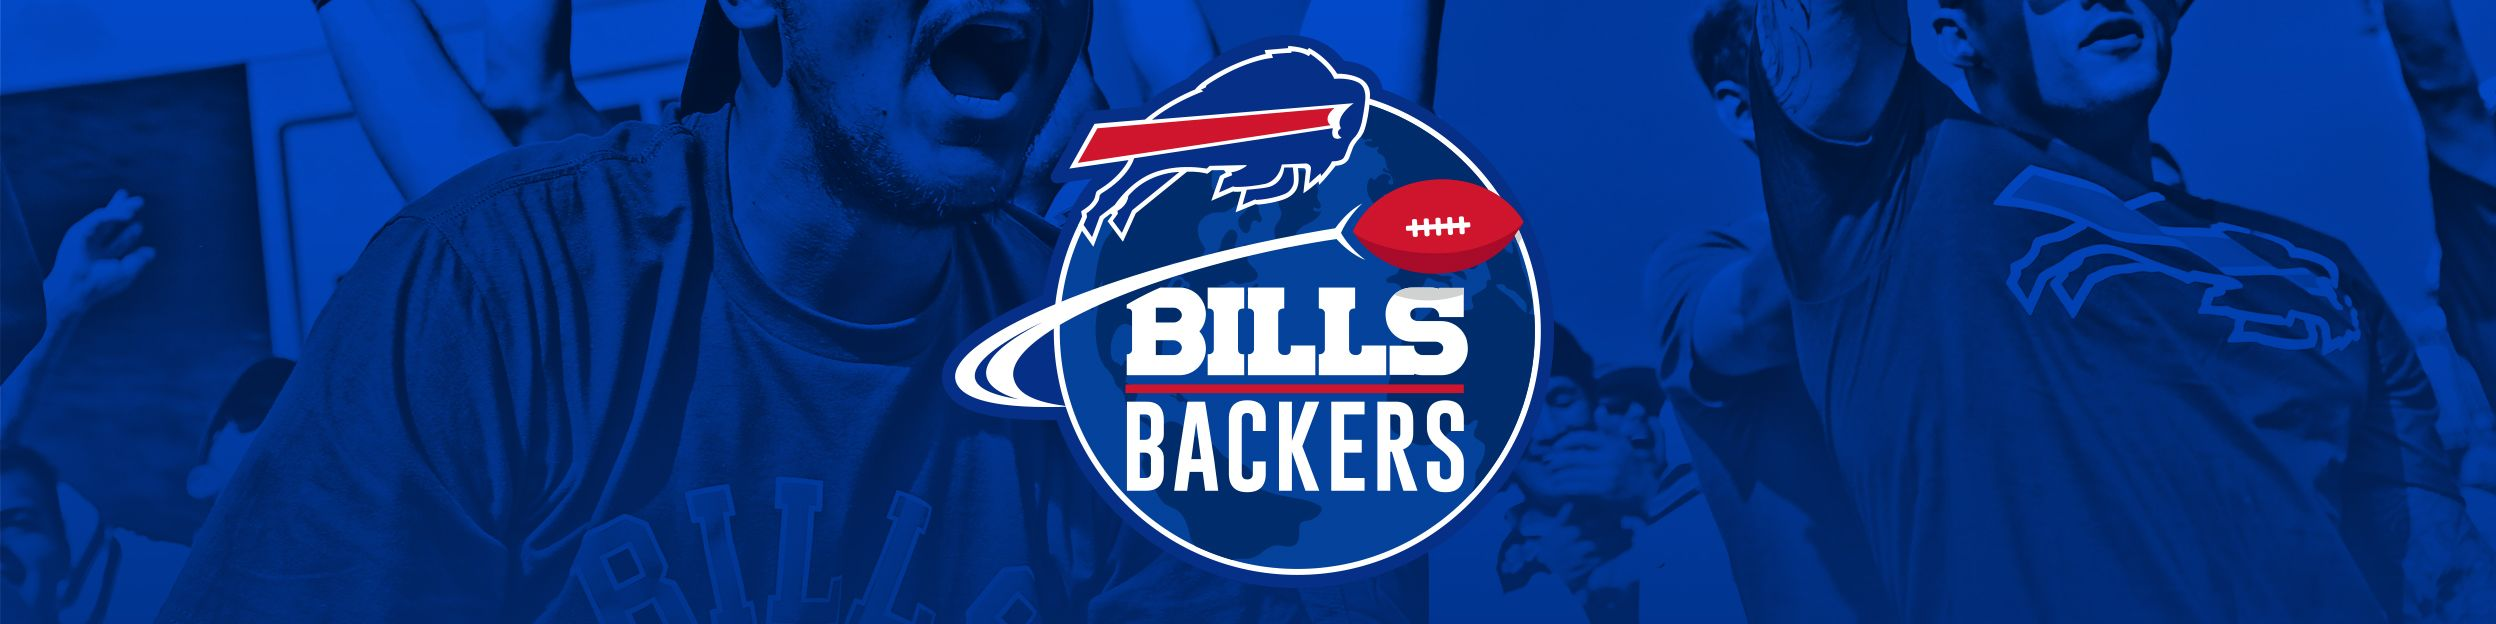 BBMKT-04715_-_Website_Bills_Backer_Header_Updates (1)